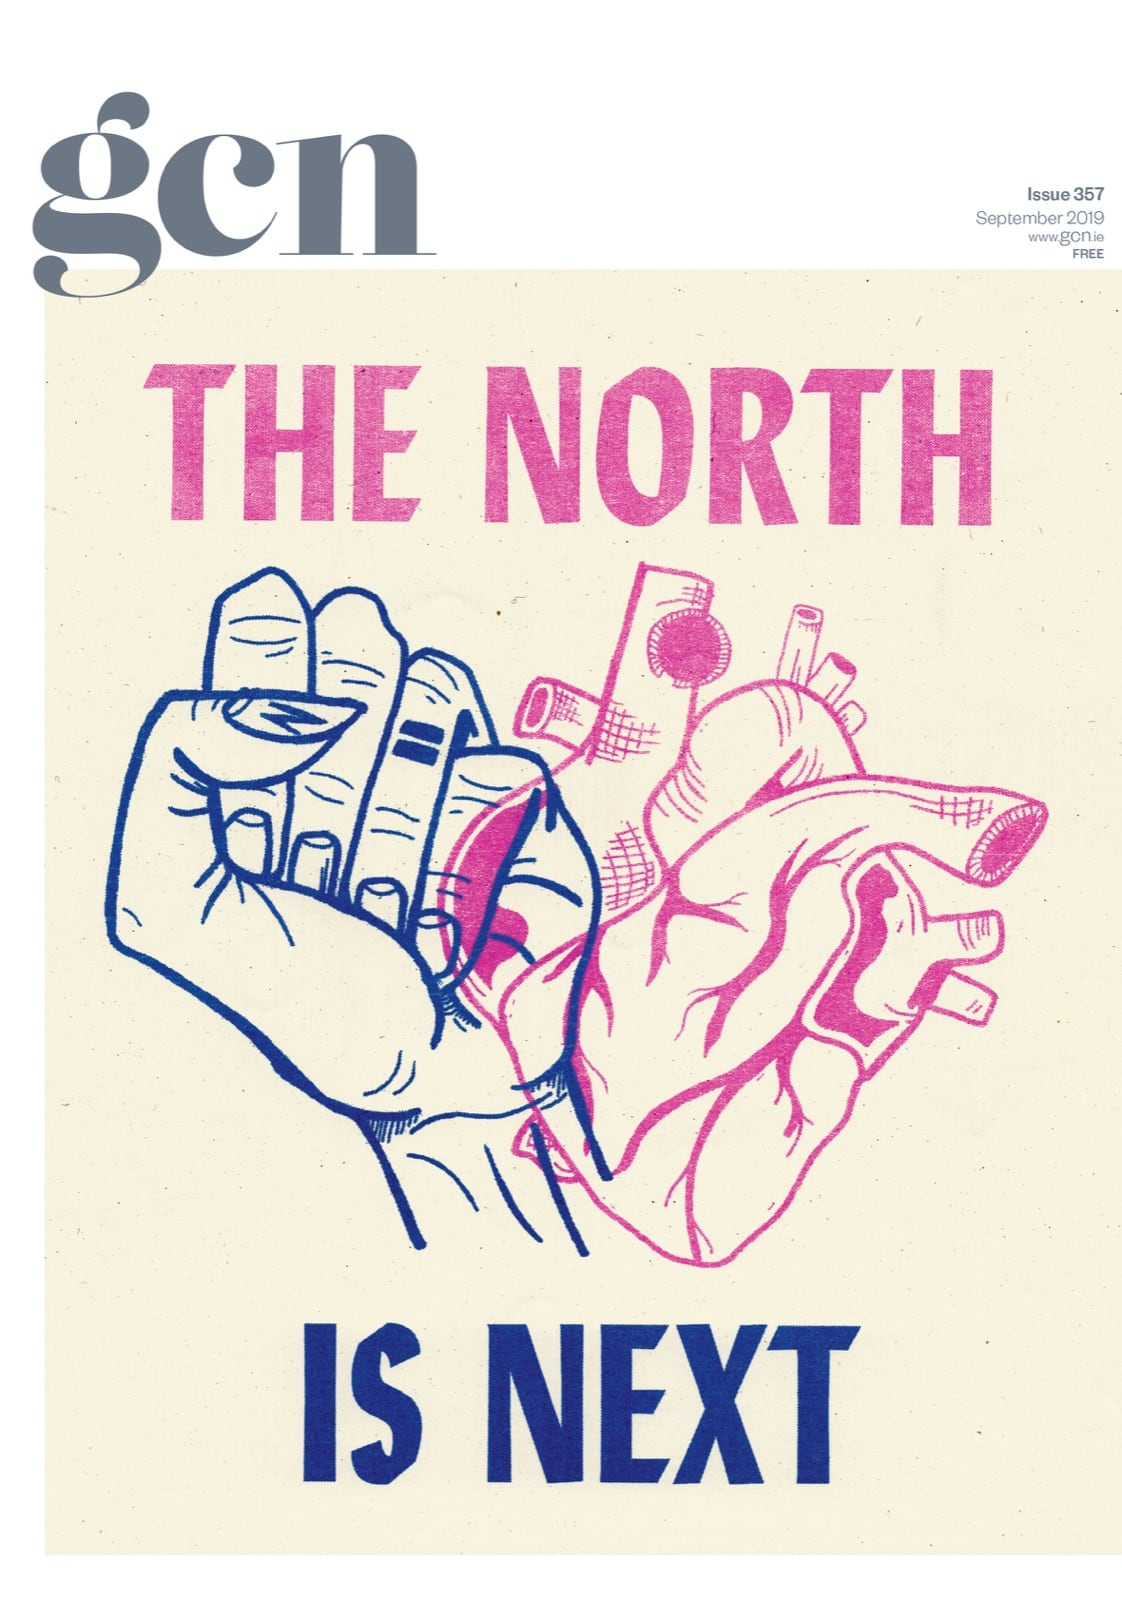 Some of GCN's covers from 2017 with an illustration of a fist and a heart on the cover and the words 'The North Is Next'.